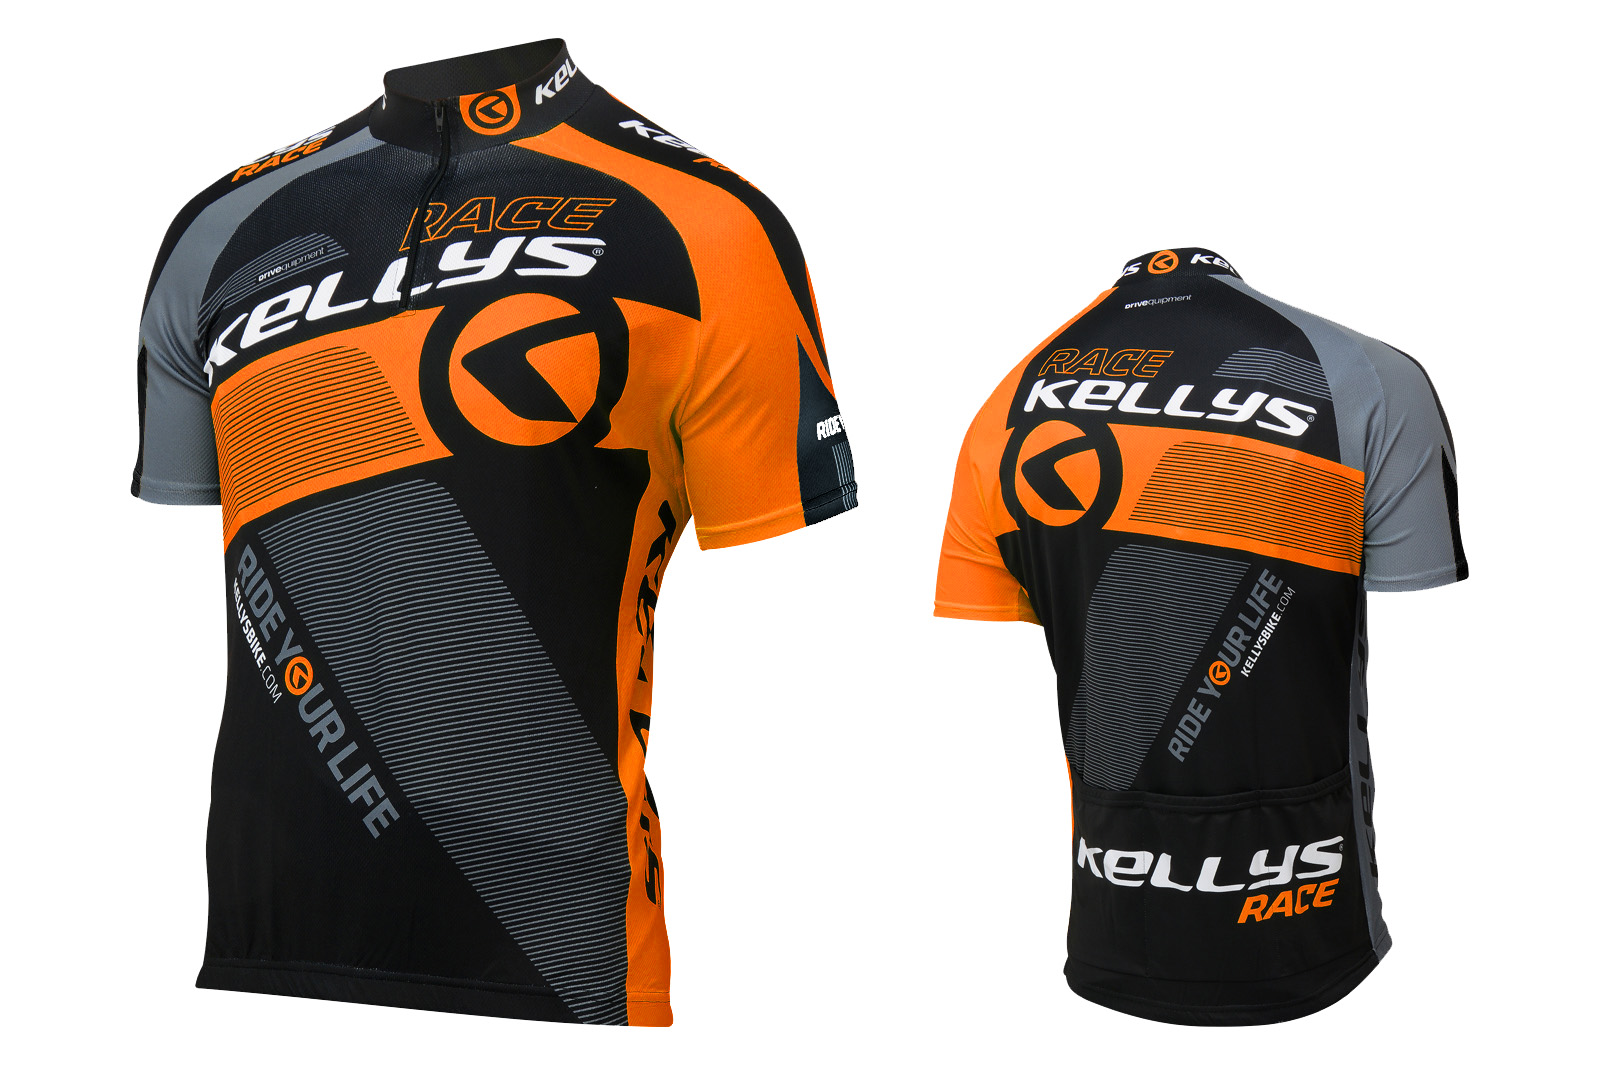 Kurzarmtrikot KELLYS PRO Race orange - S - Sport Cycling Meindl - professional cycling